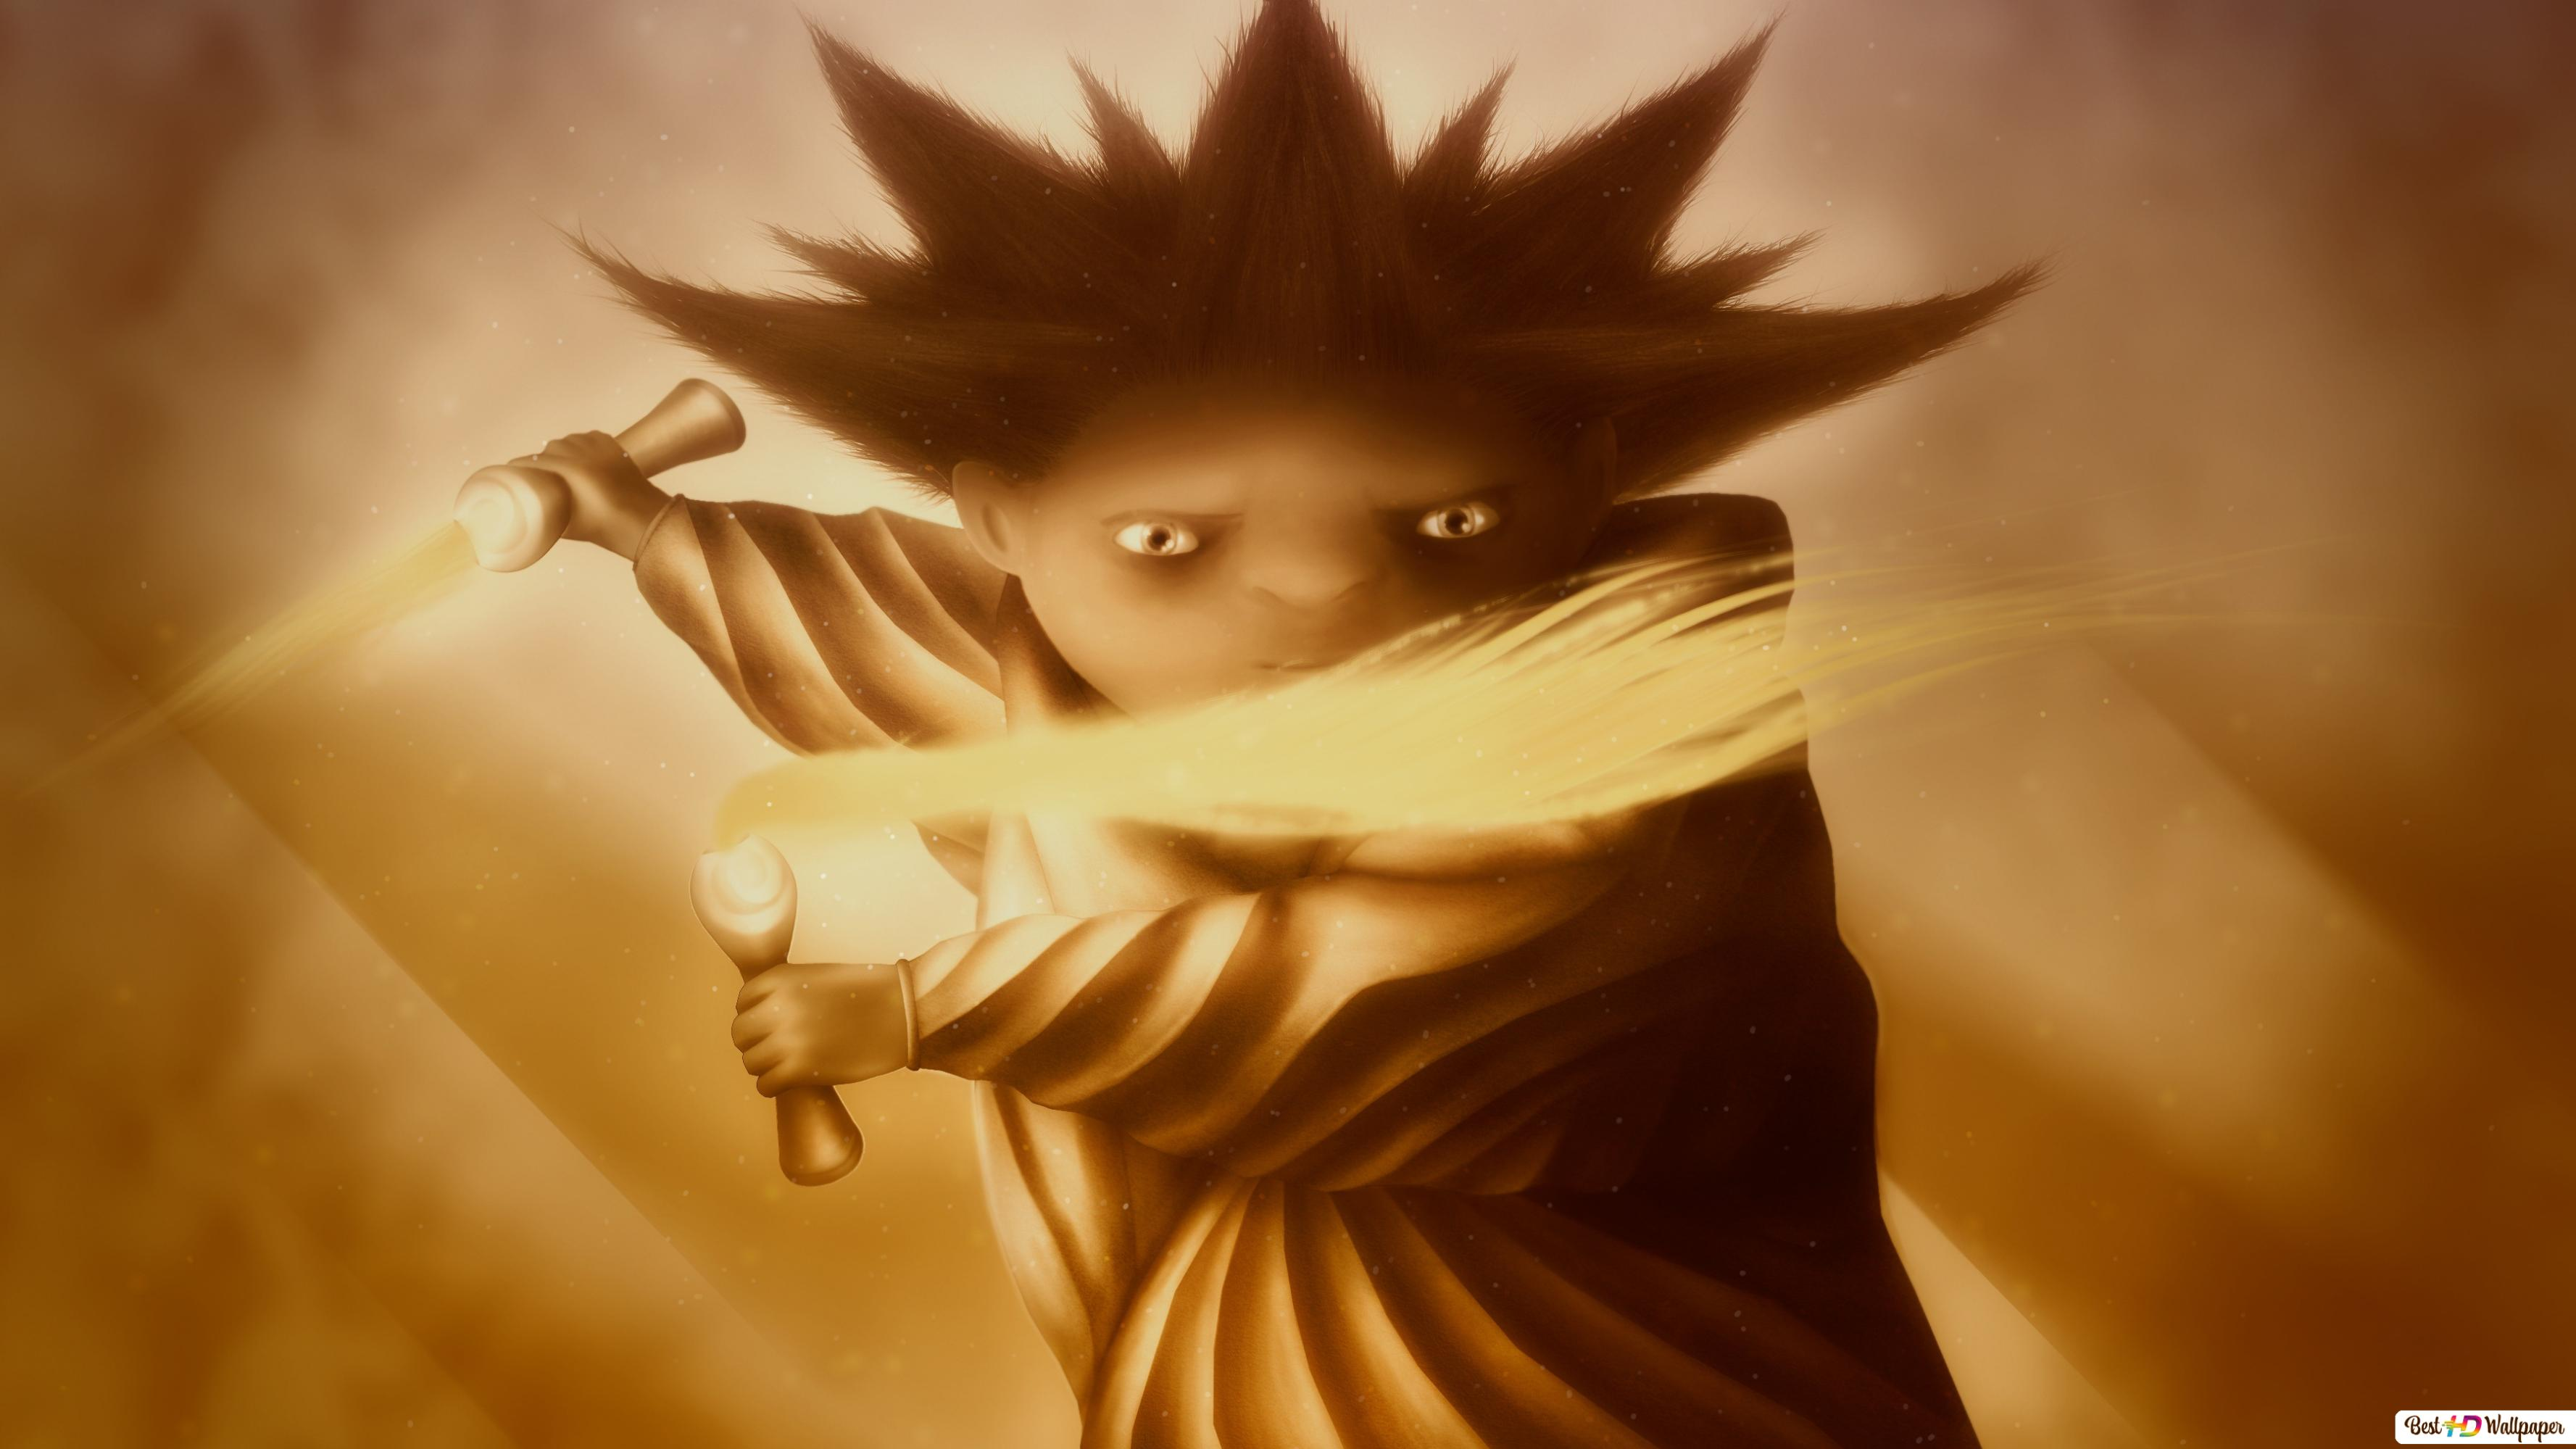 Rise Of The Guardians Sandman Hd Wallpaper Download